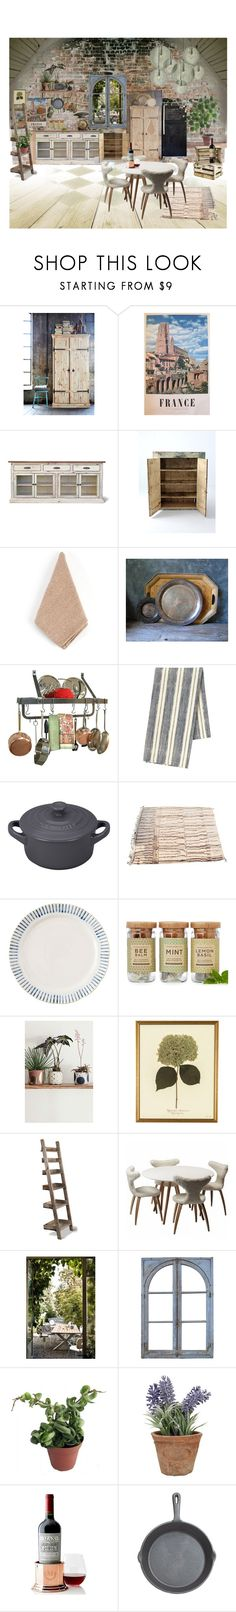 """""""Rustic kitchen"""" by les1 ❤ liked on Polyvore featuring interior, interiors, interior design, home, home decor, interior decorating, Saro, Birks, Enclume and Pehr"""